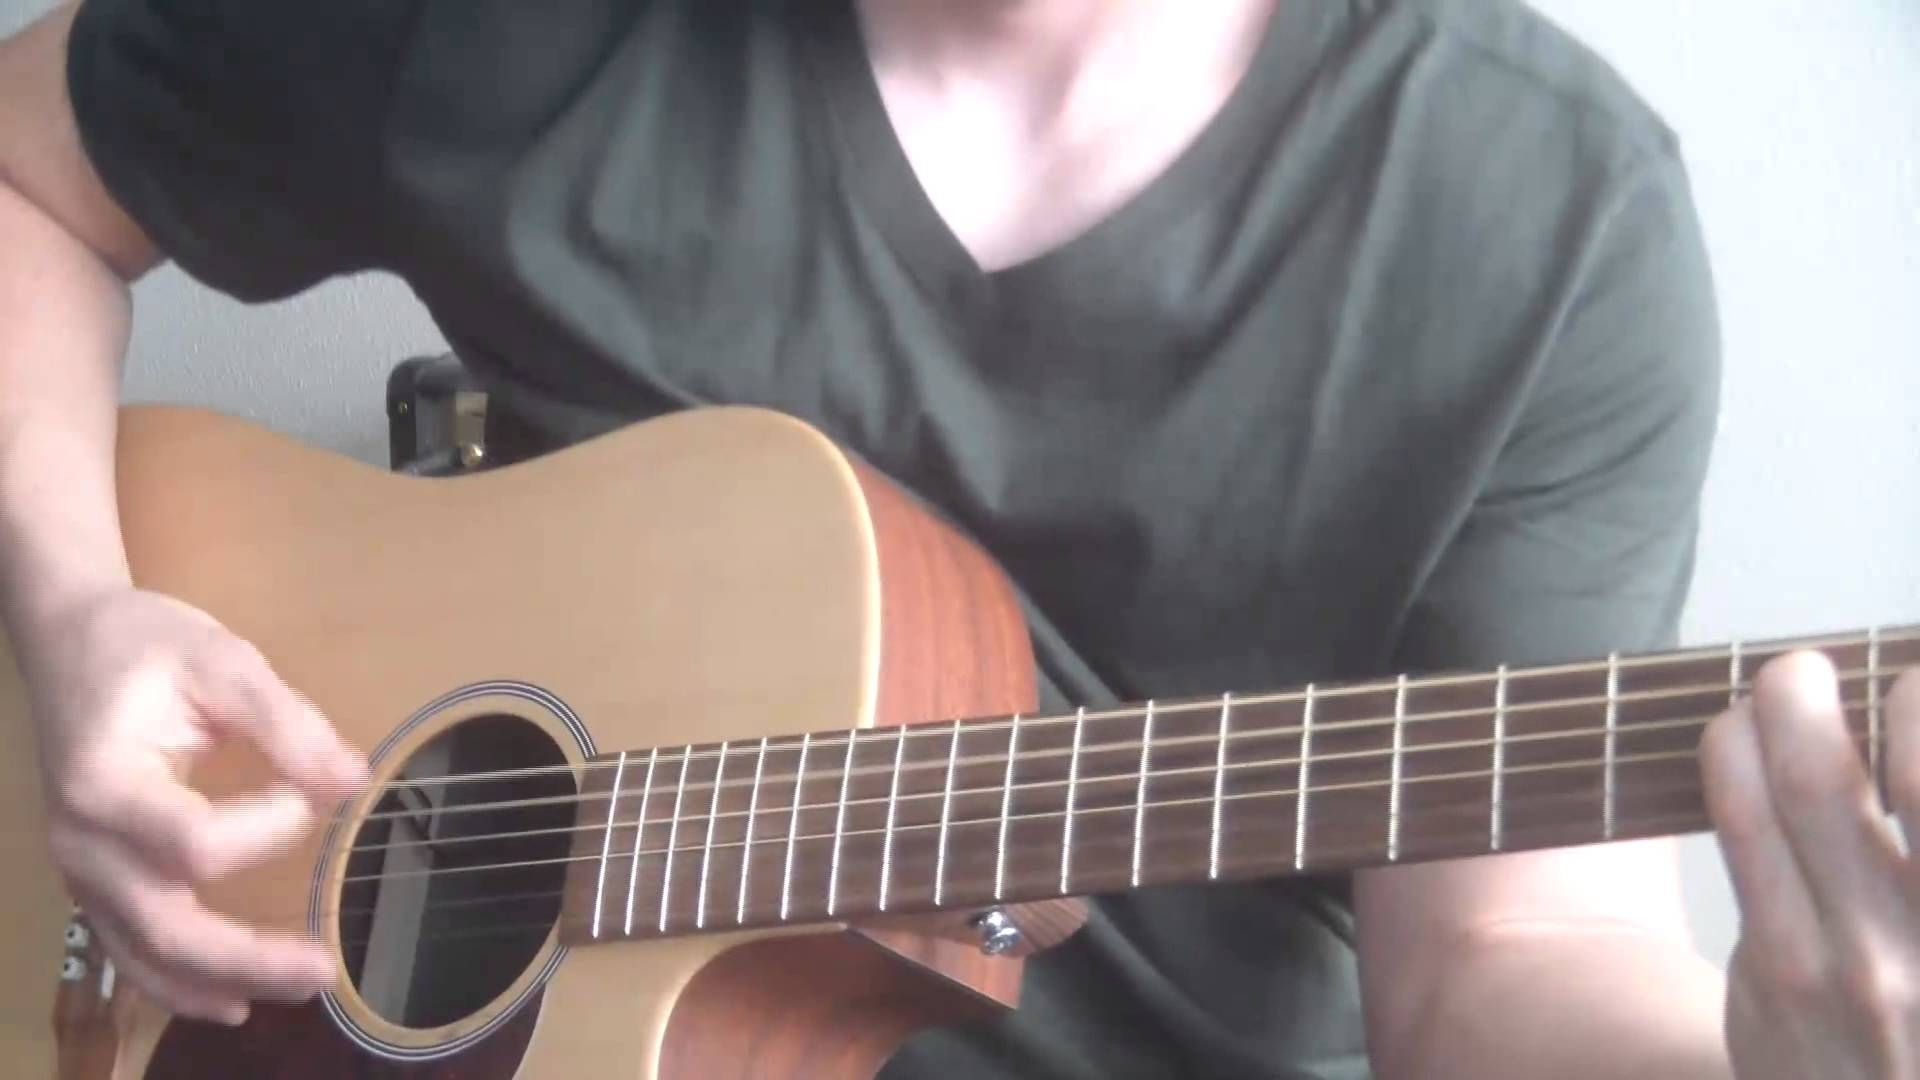 This is how you play tom pettys free falling this tutorial this is how you play tom pettys free falling this tutorial illustrates the chords hexwebz Image collections